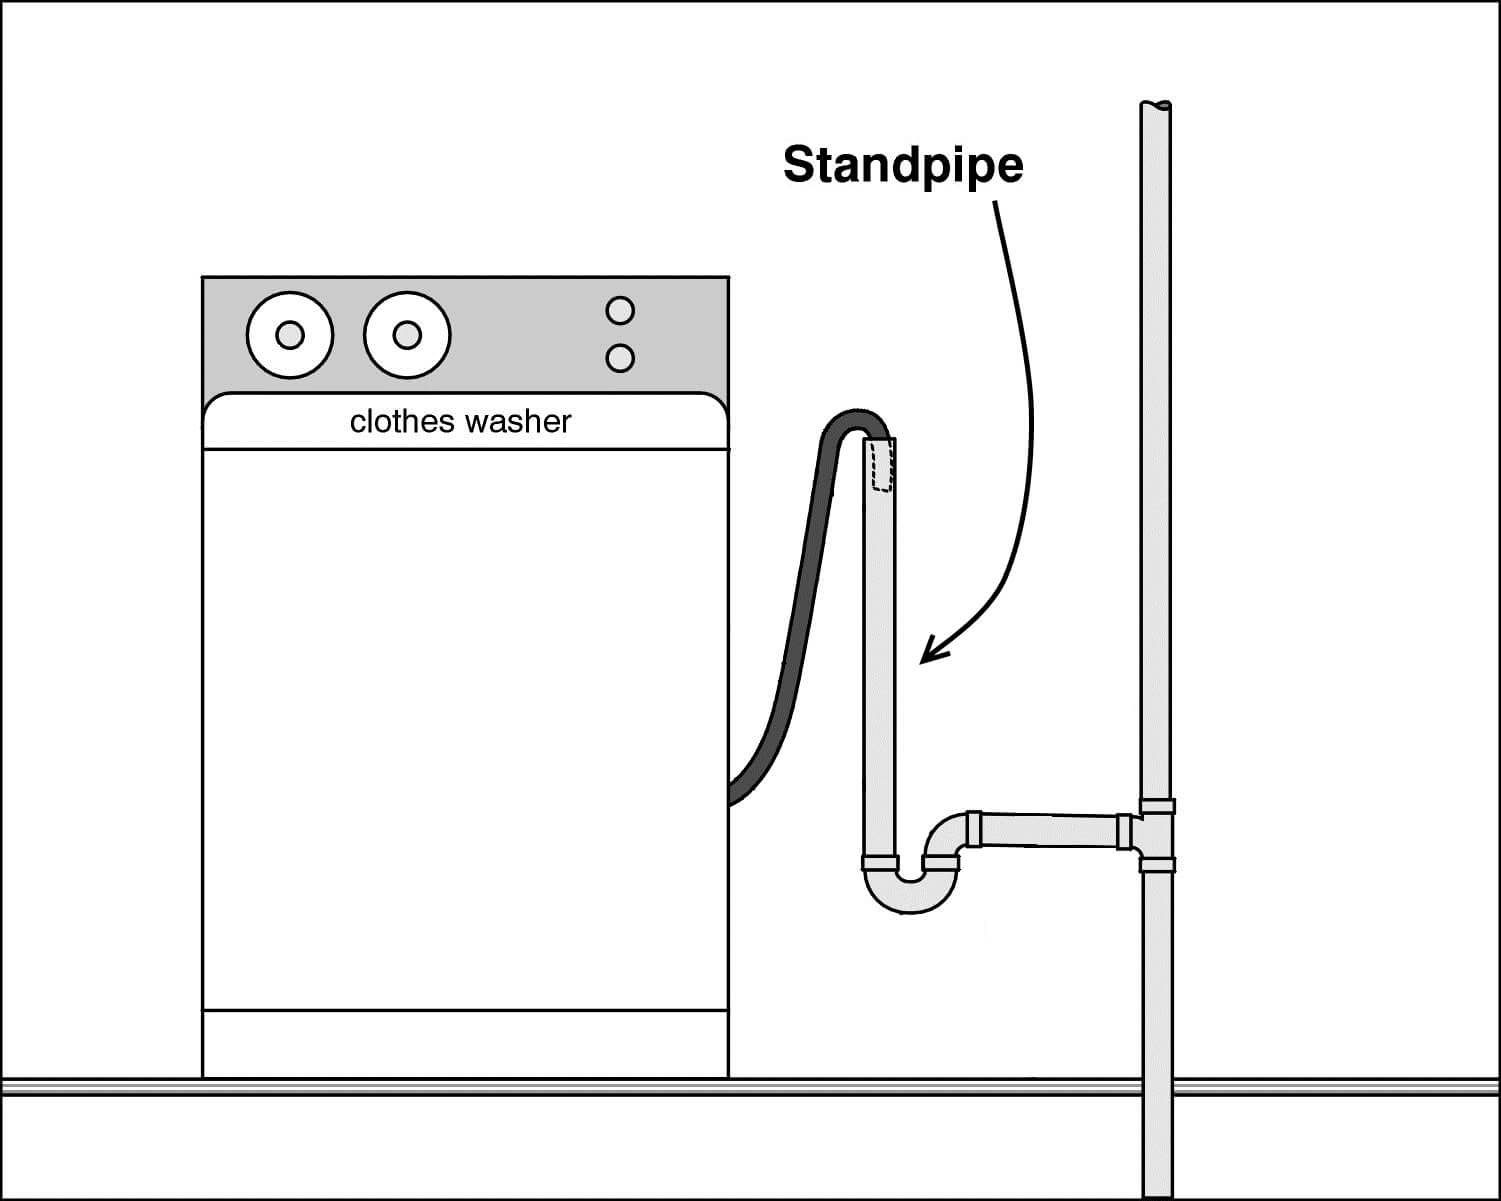 washing machine stand pipe